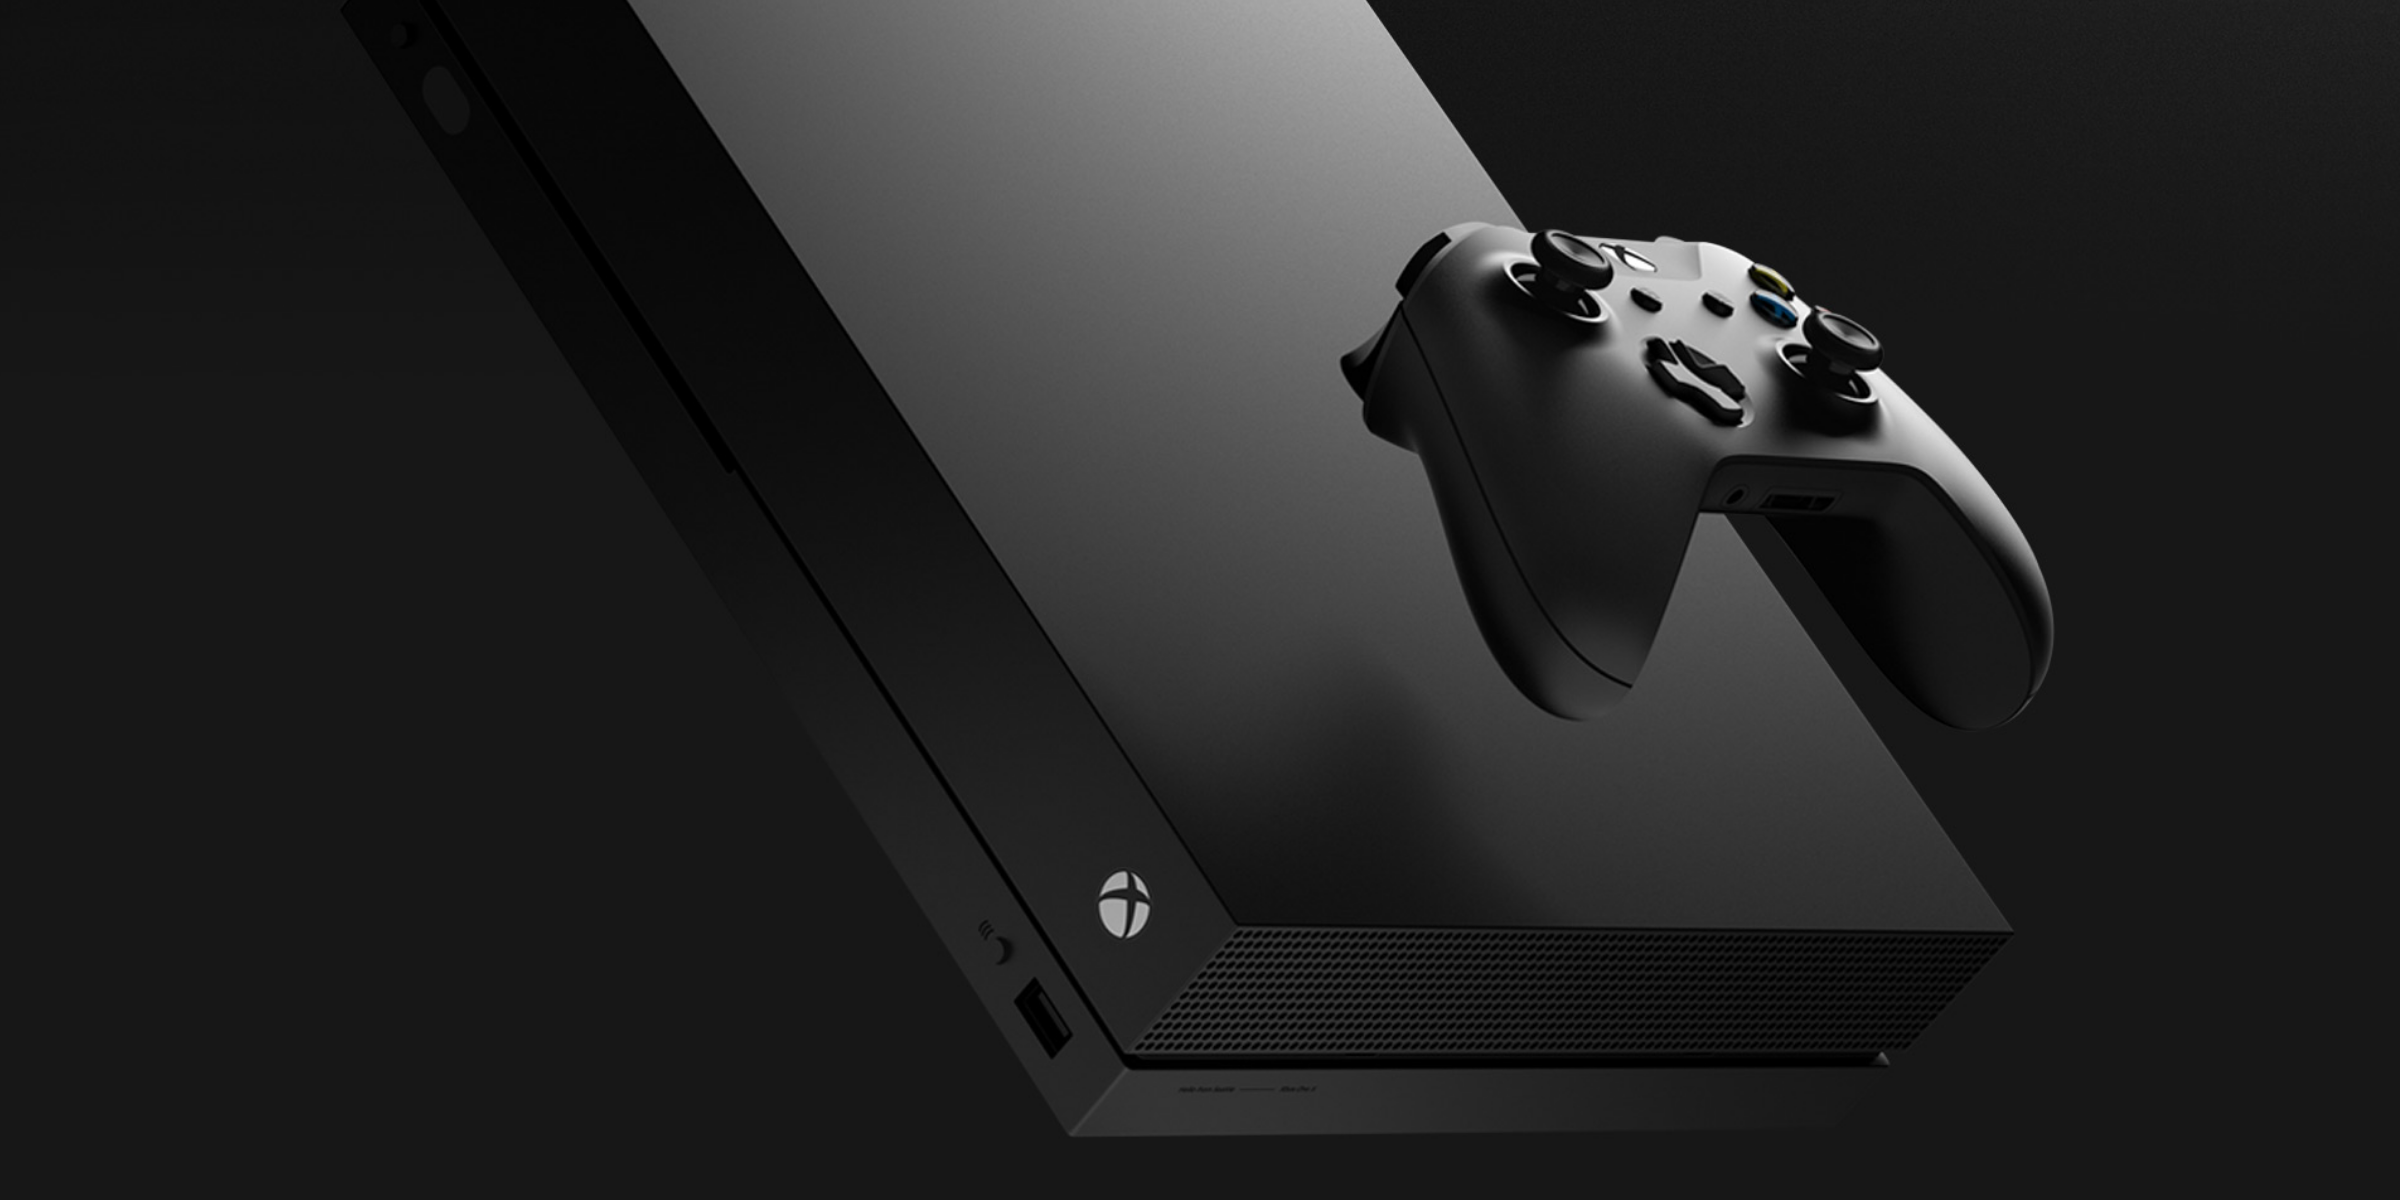 Xbox One X console floating with a controller